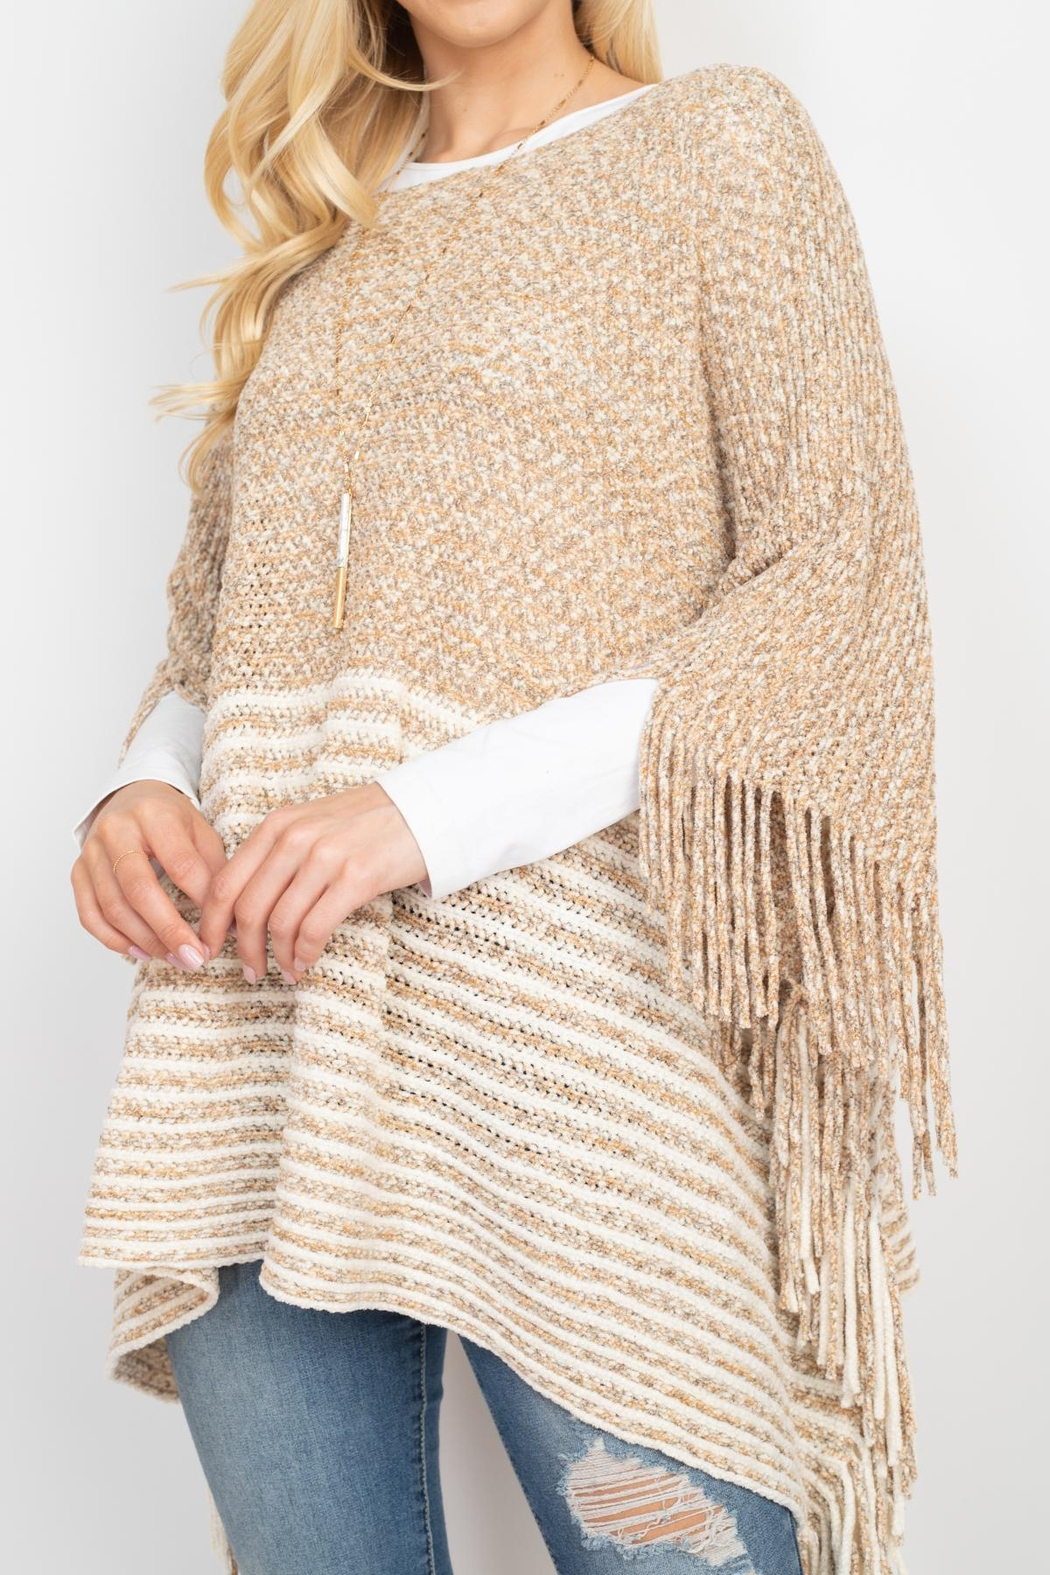 Riah Fashion Knitted-Two-Tone-Striped-Fringe-Poncho - Front Full Image